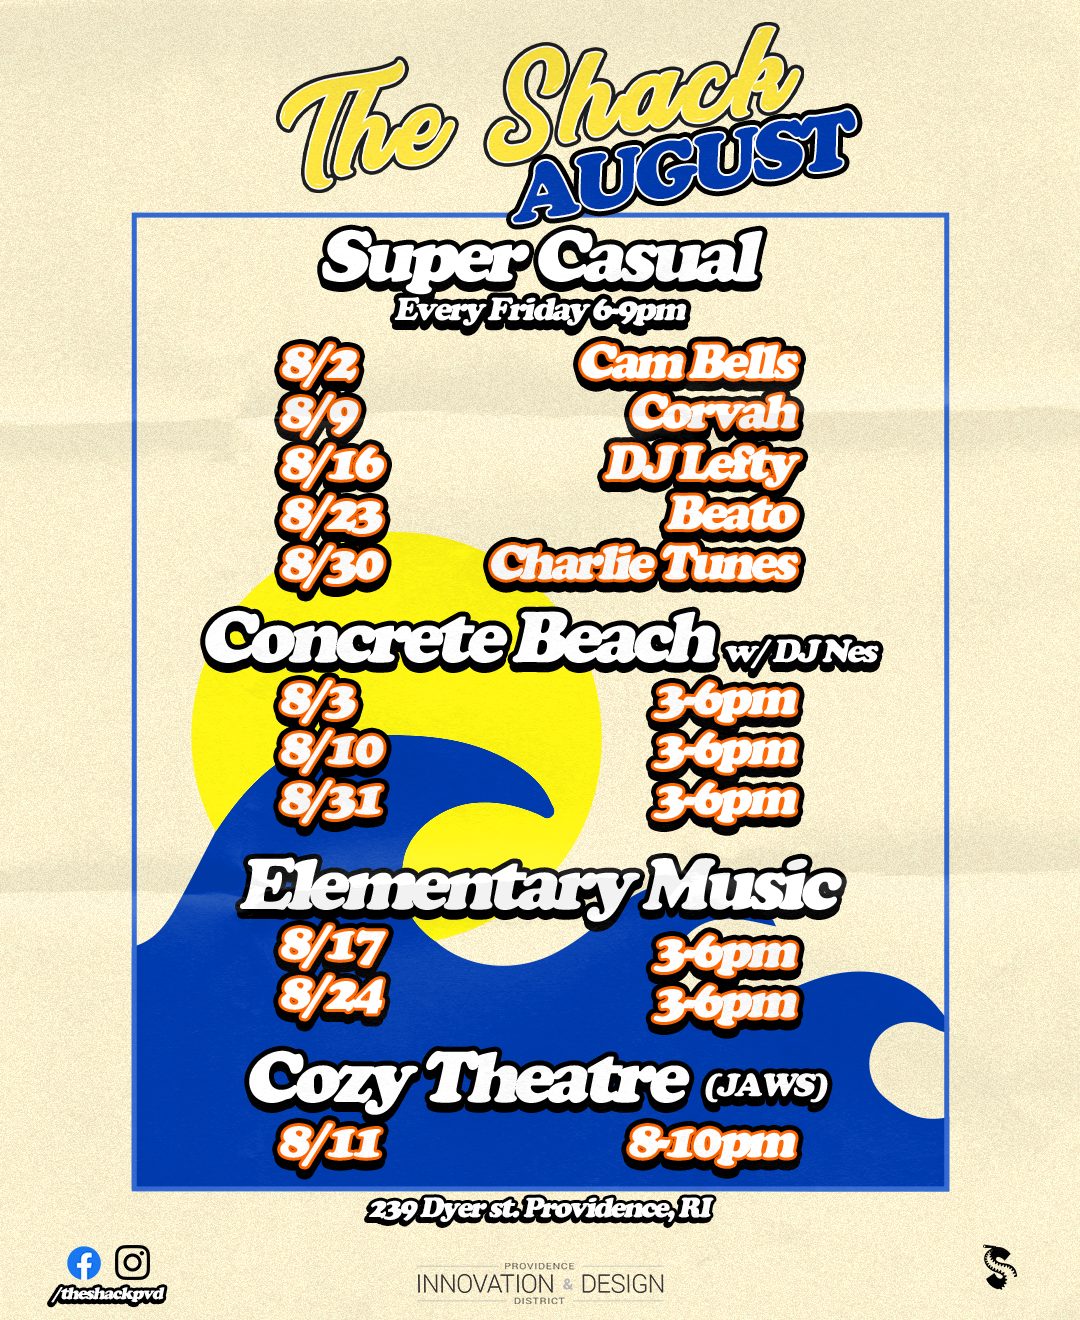 THE SHACK AUGUST CALENDAR.png